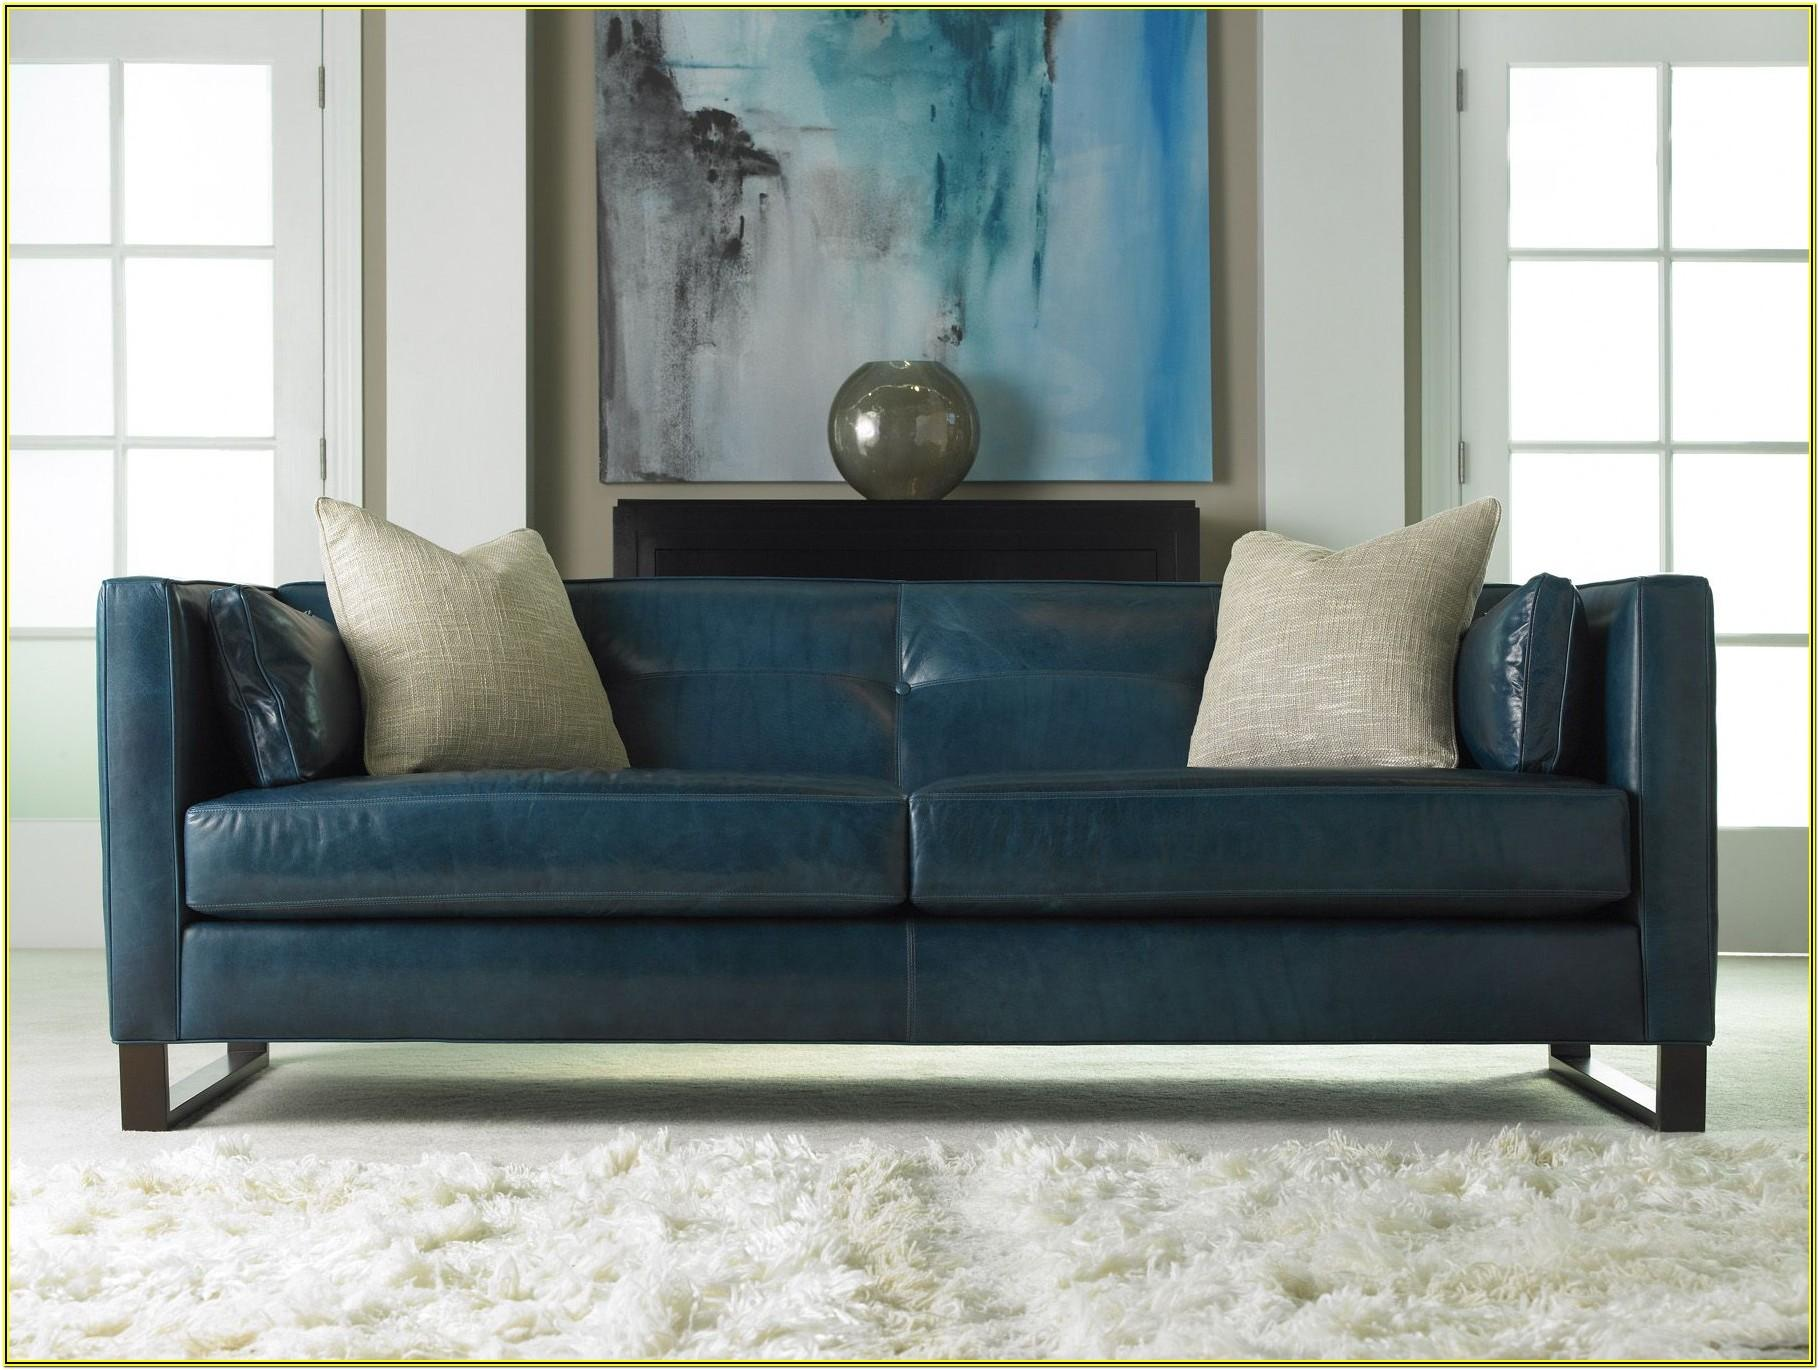 Living Room Ideas With Blue Leather Couch